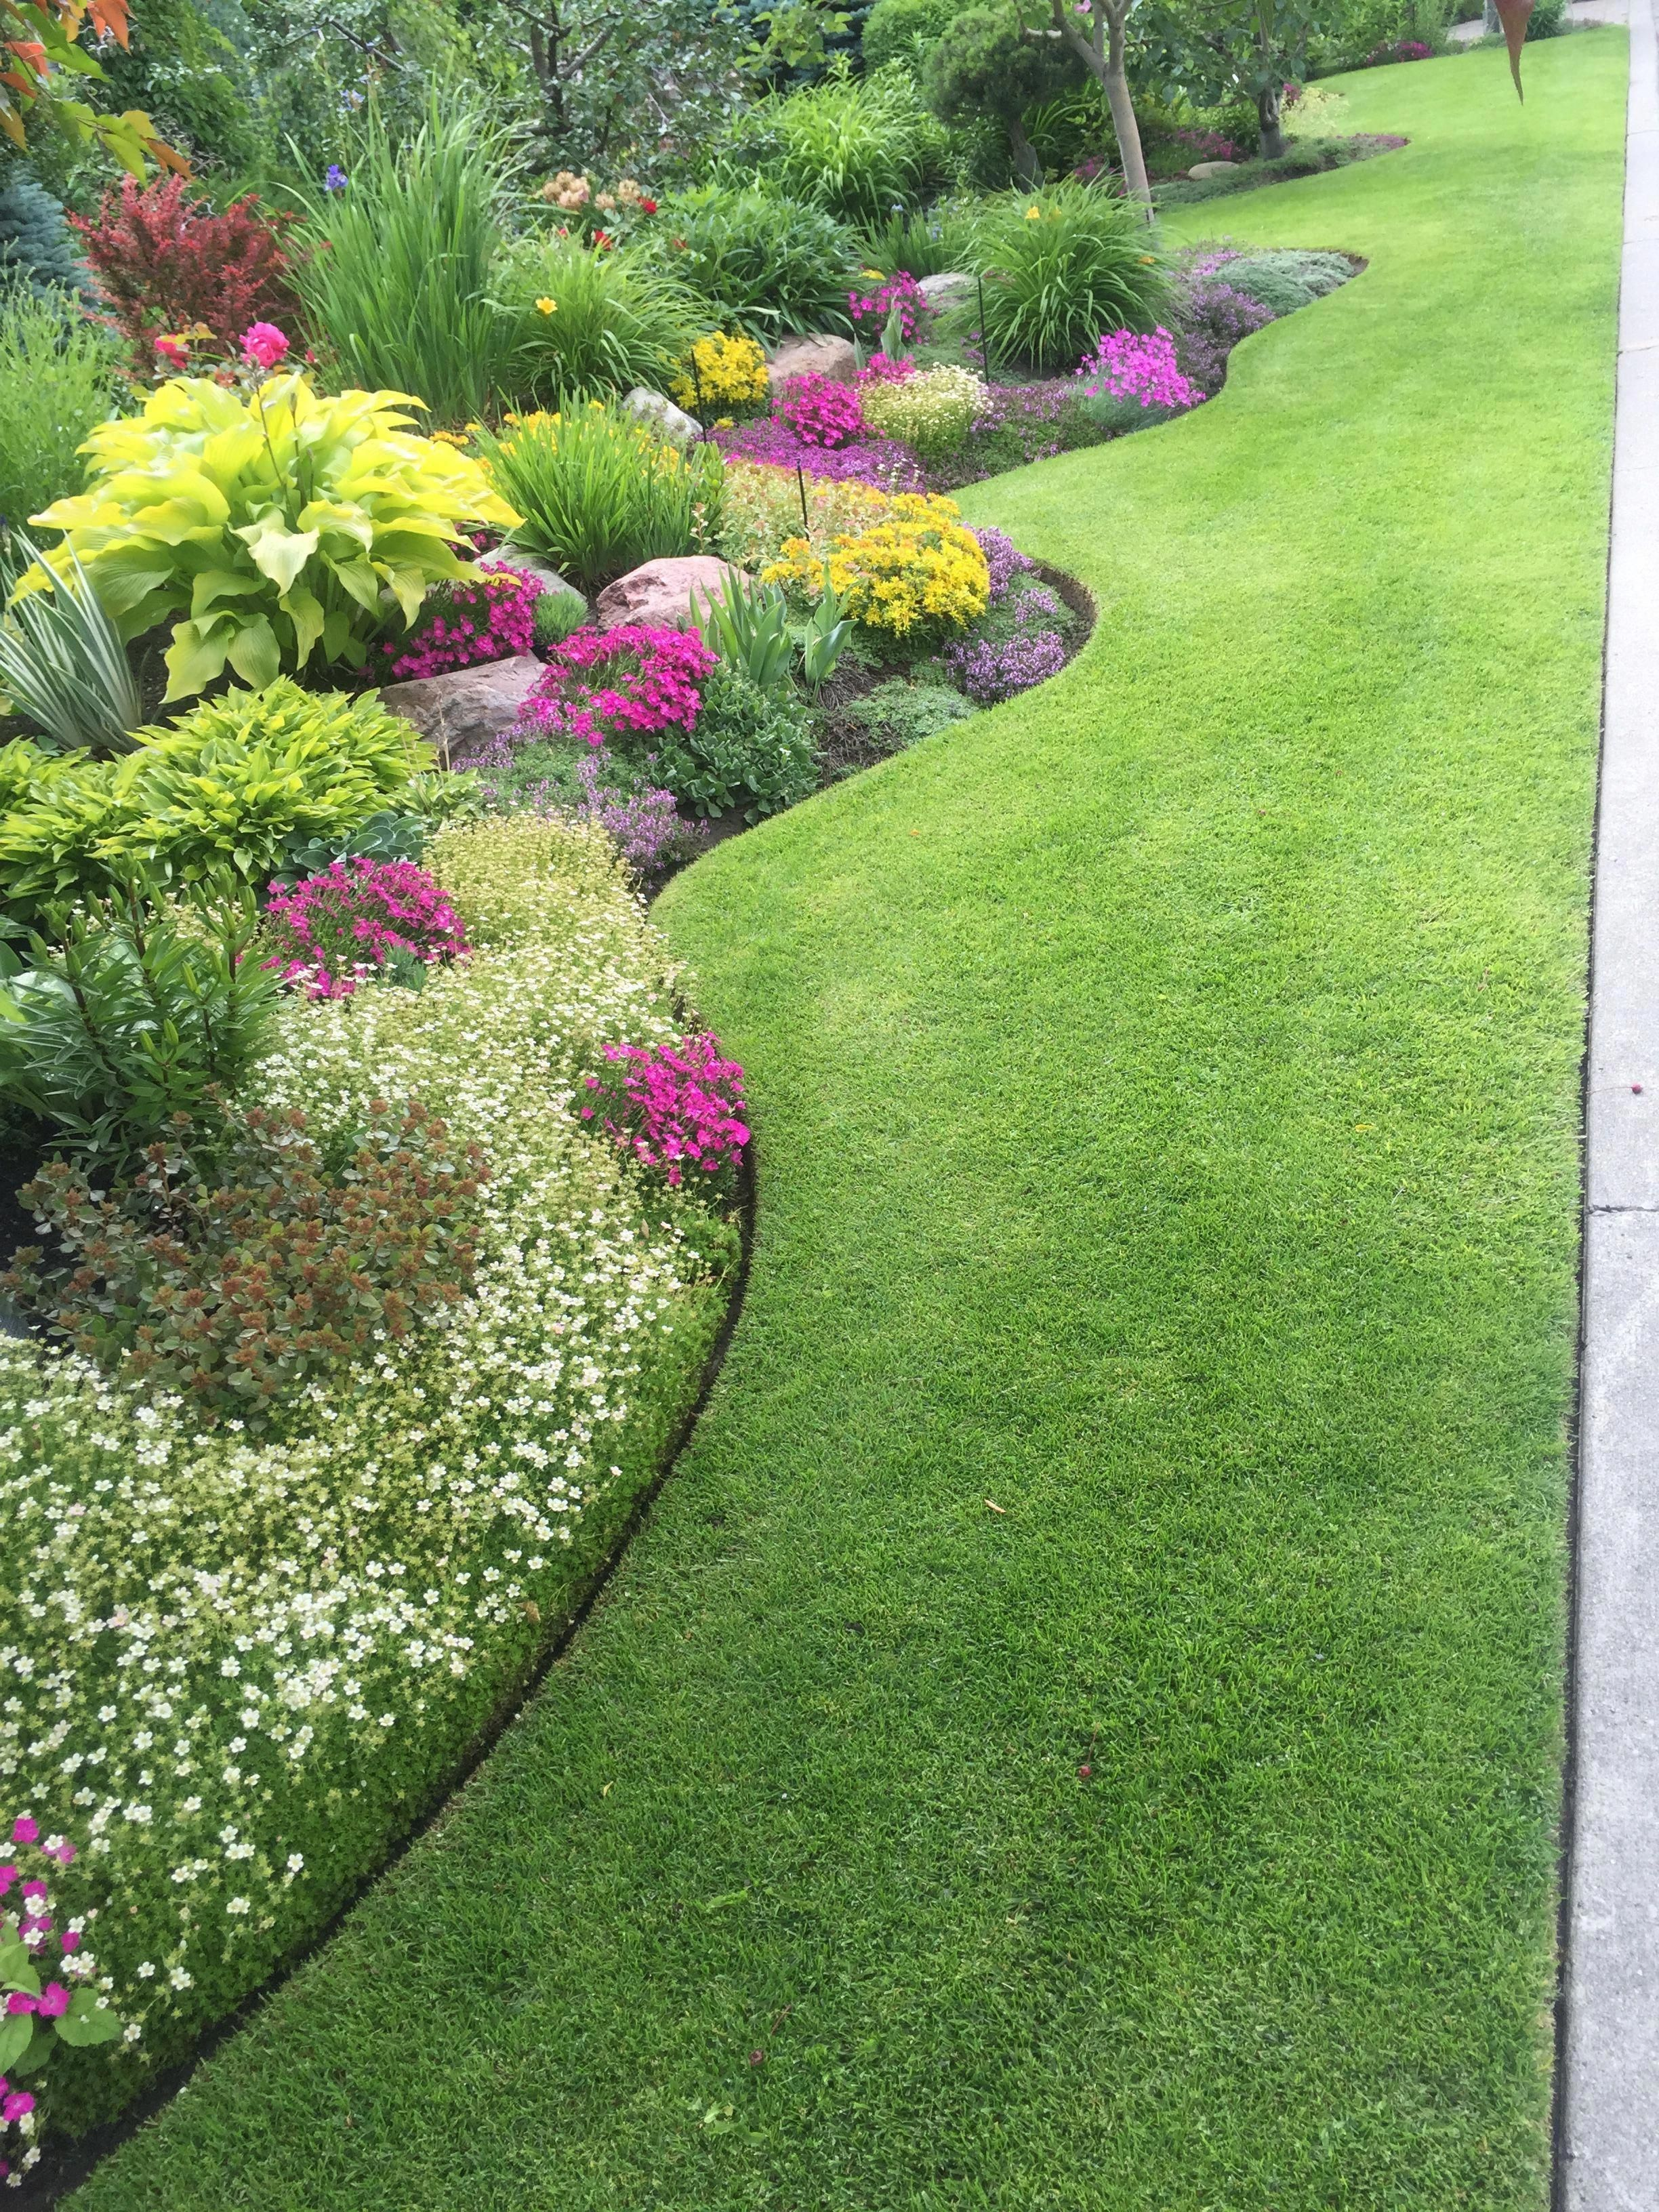 Front Yard Landscaping Ideas Steal These Affordable And Simple Landscape Design Idea Garden Design Layout Landscaping Front Yard Landscaping Yard Landscaping Simple backyard flower garden ideas